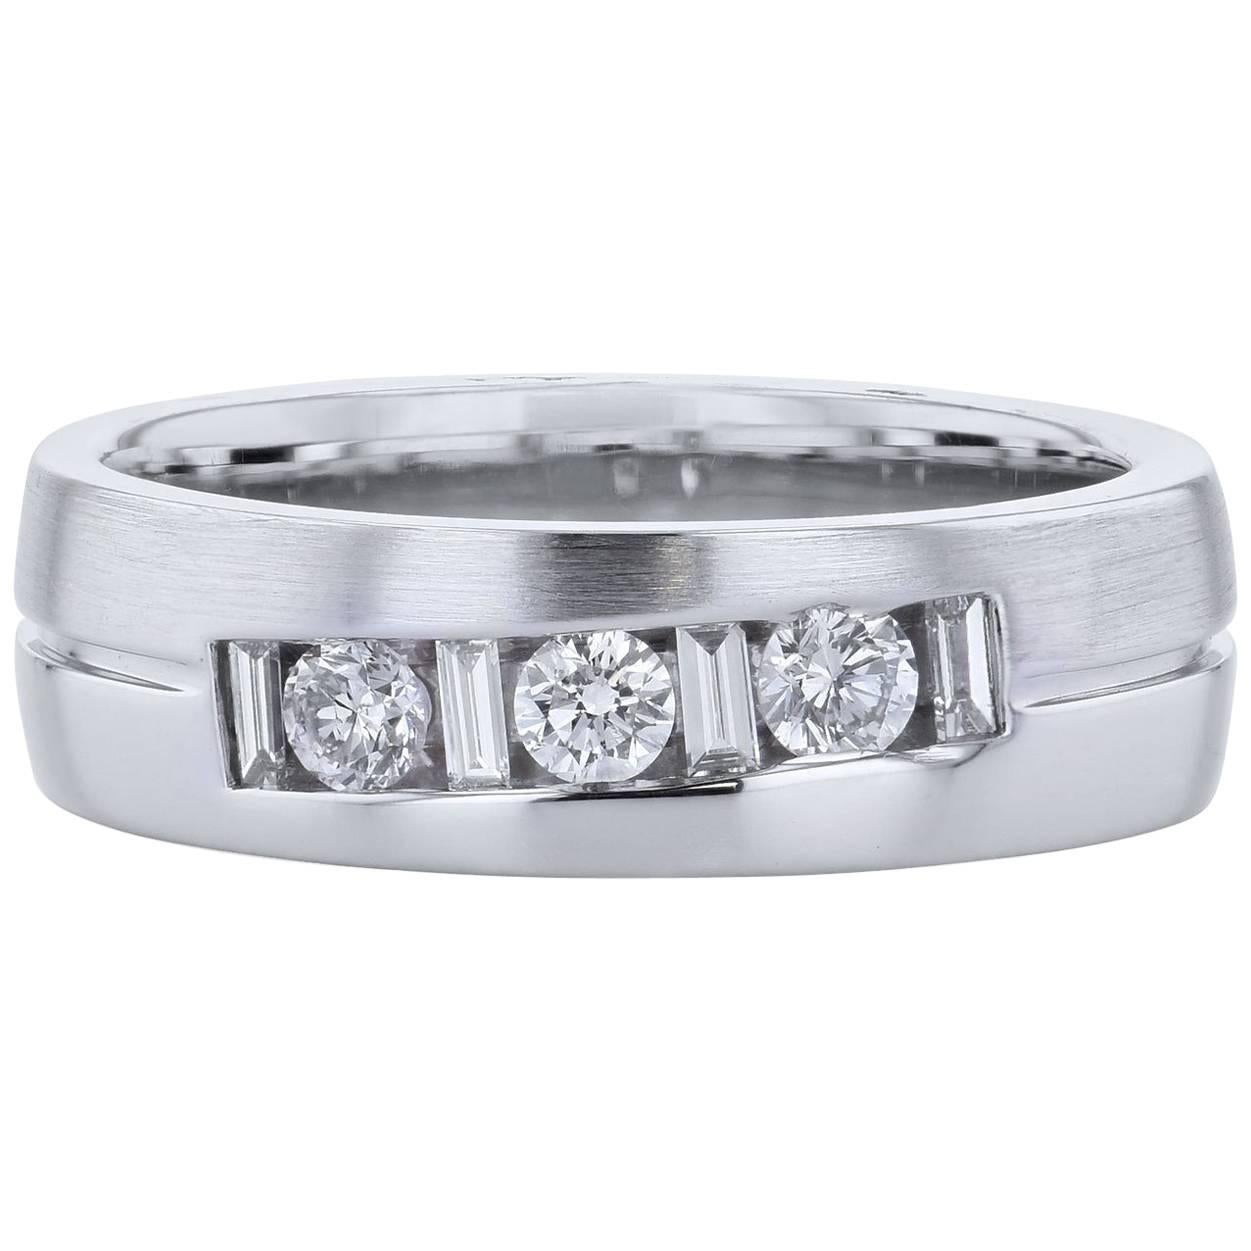 Men's 0.75 Carat Round and Baguette Diamond Band Wedding Ring Size 10